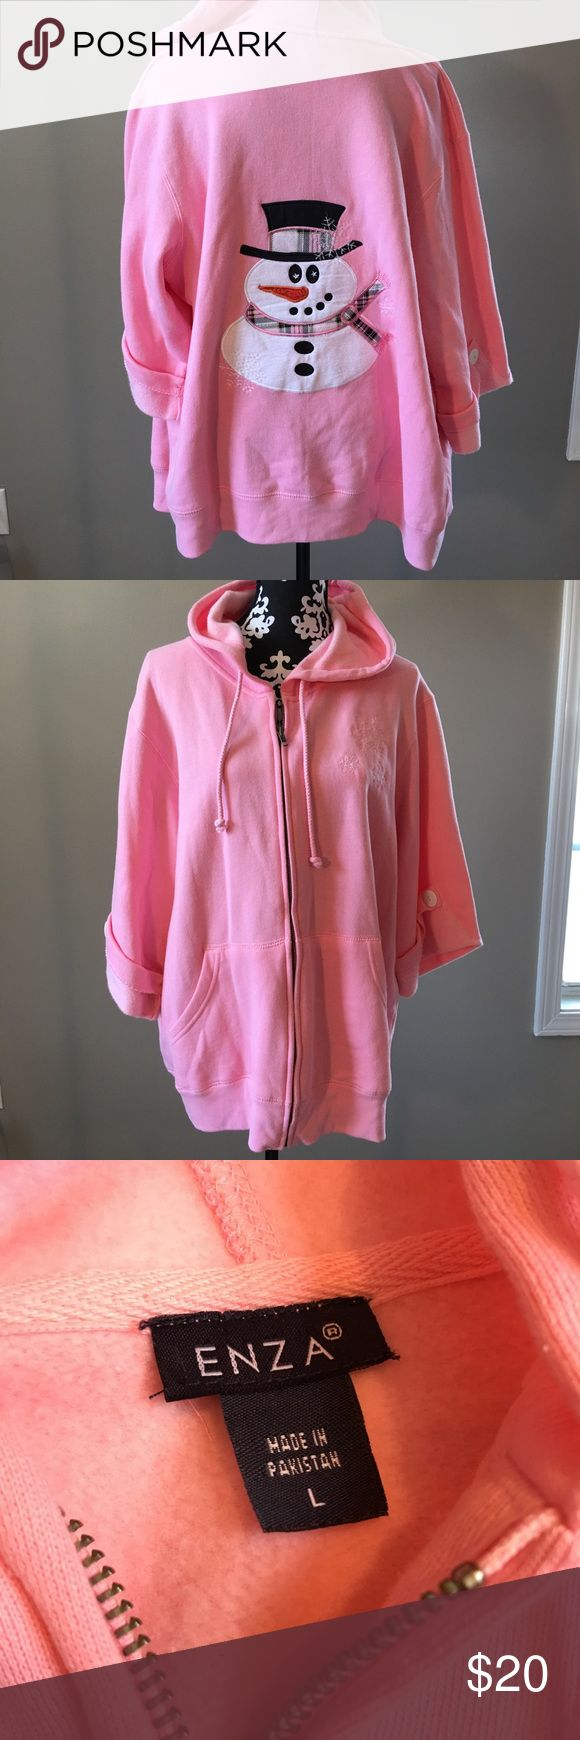 Enza woman's Christmas pink snowman hoodie L Enza Preowned woman's pink zip up hoodie 3 quarter sleeve snowman on back snowflake on the front size large see all measurements in photos cute hoodie Enza Tops Sweatshirts & Hoodies